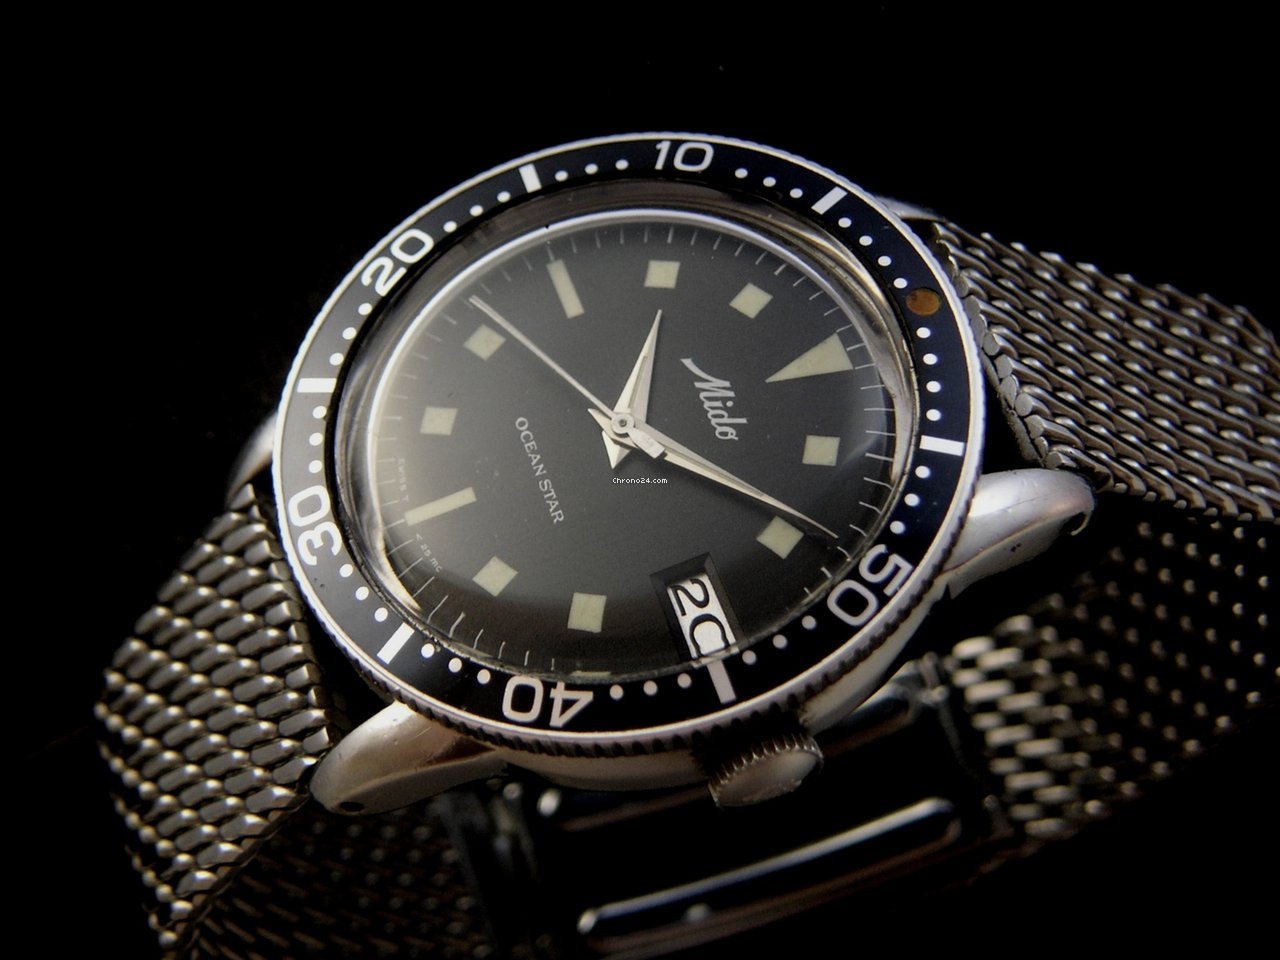 Mido rare ocean star diver watch 60 39 s sold on chrono24 for Mido watches